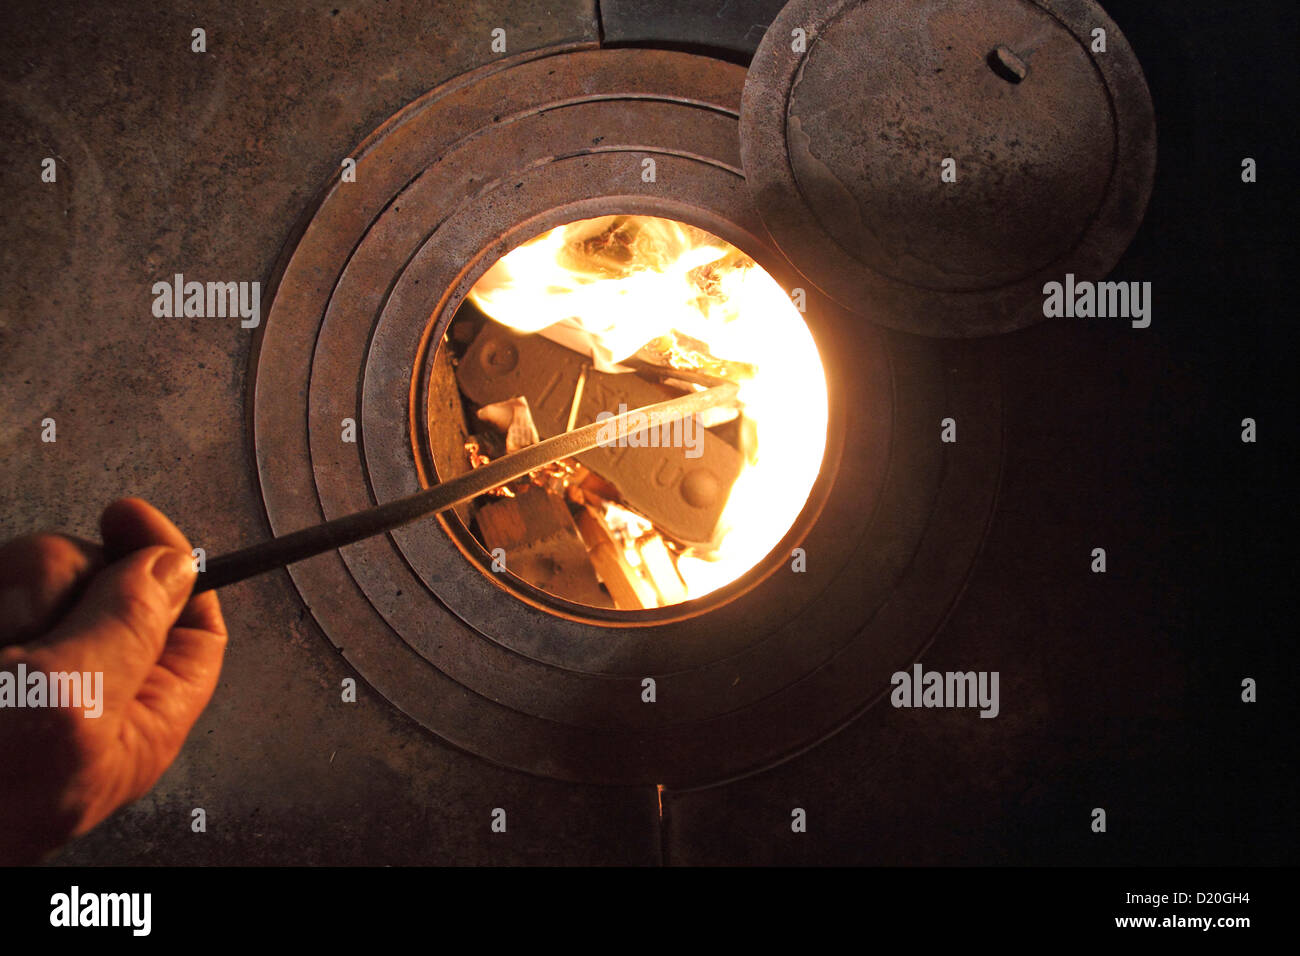 A man puts a log of wood in an old stove - Stock Image